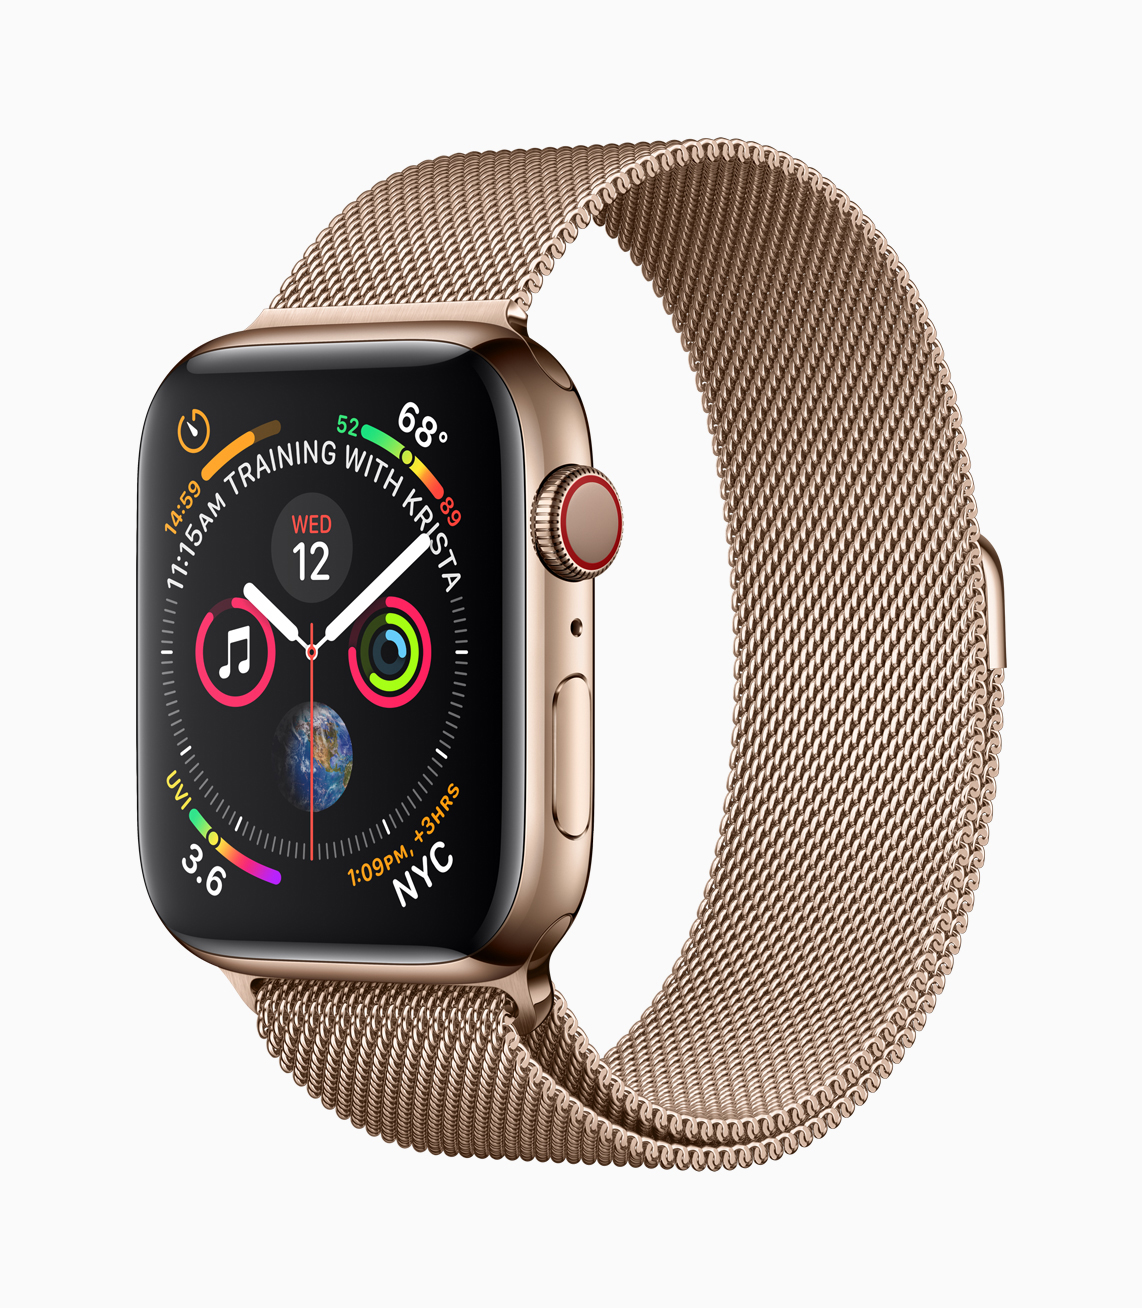 https://www.apple.com/newsroom/images/product/watch/standard/apple-watch-series4_gold-milanese_09122018_carousel.jpg.large_2x.jpg